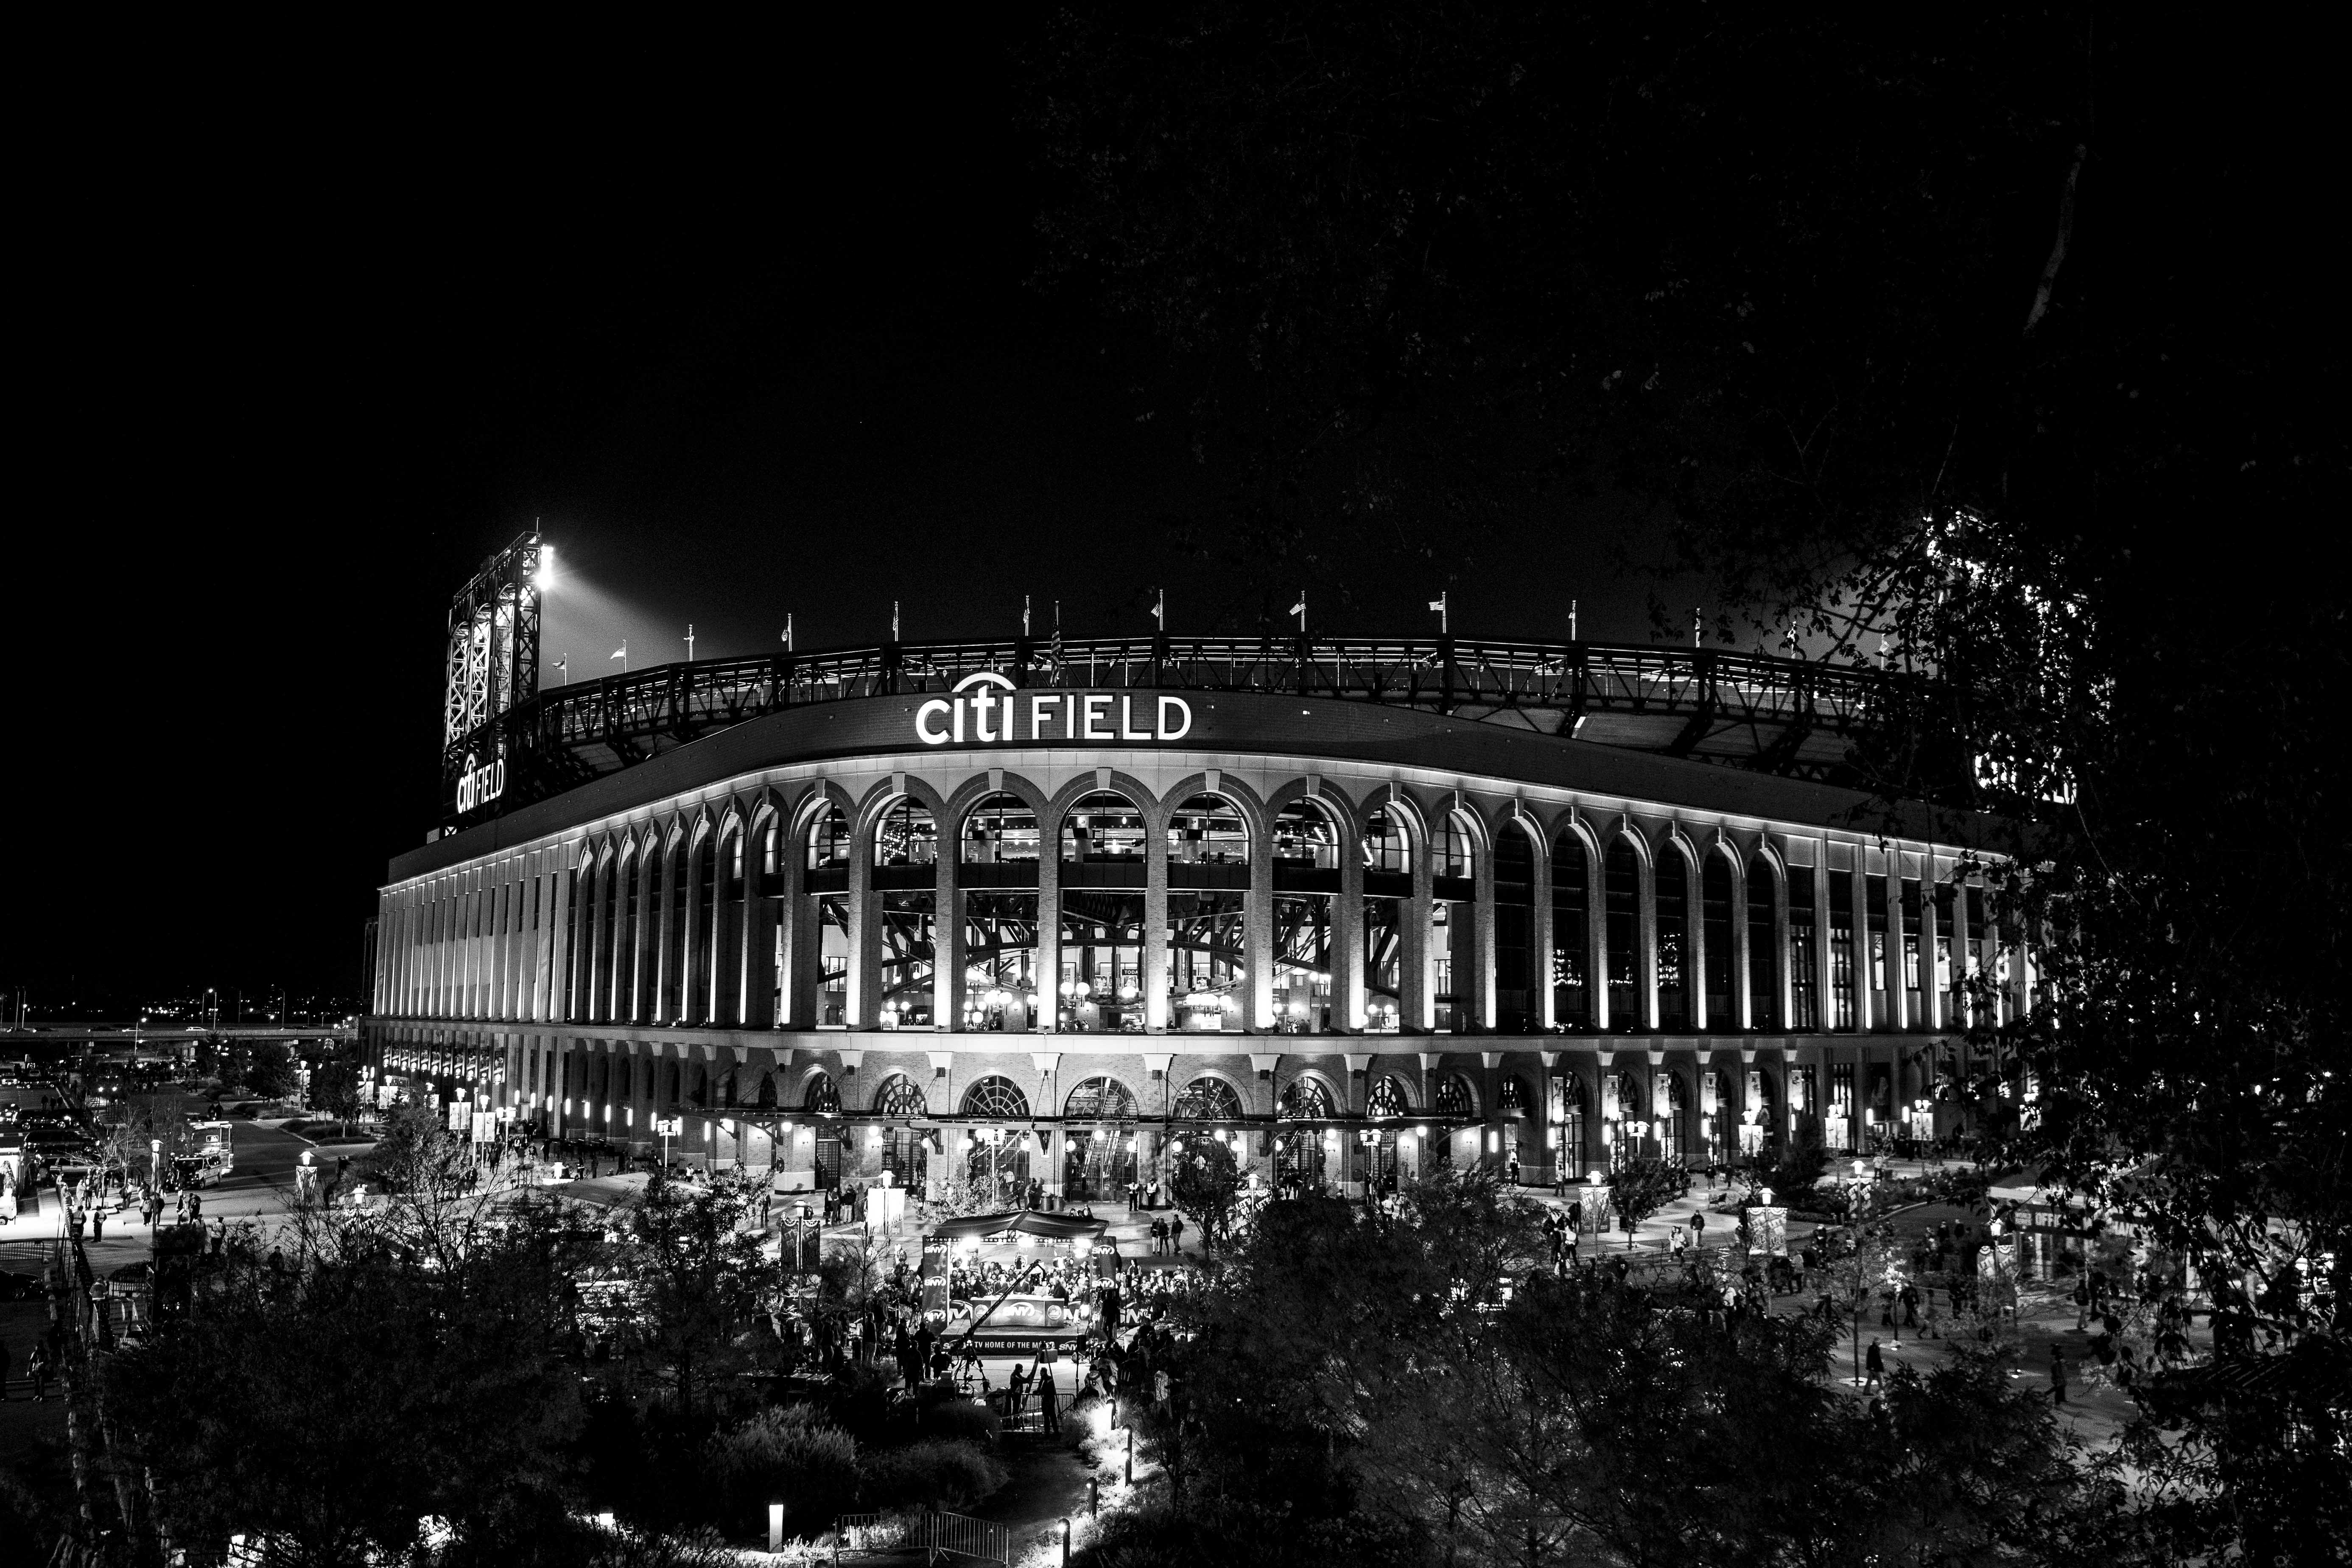 2015 World Series between the Kansas City Royals and the New York Mets. (Photo by Taylor Baucom/The Players' Tribune)